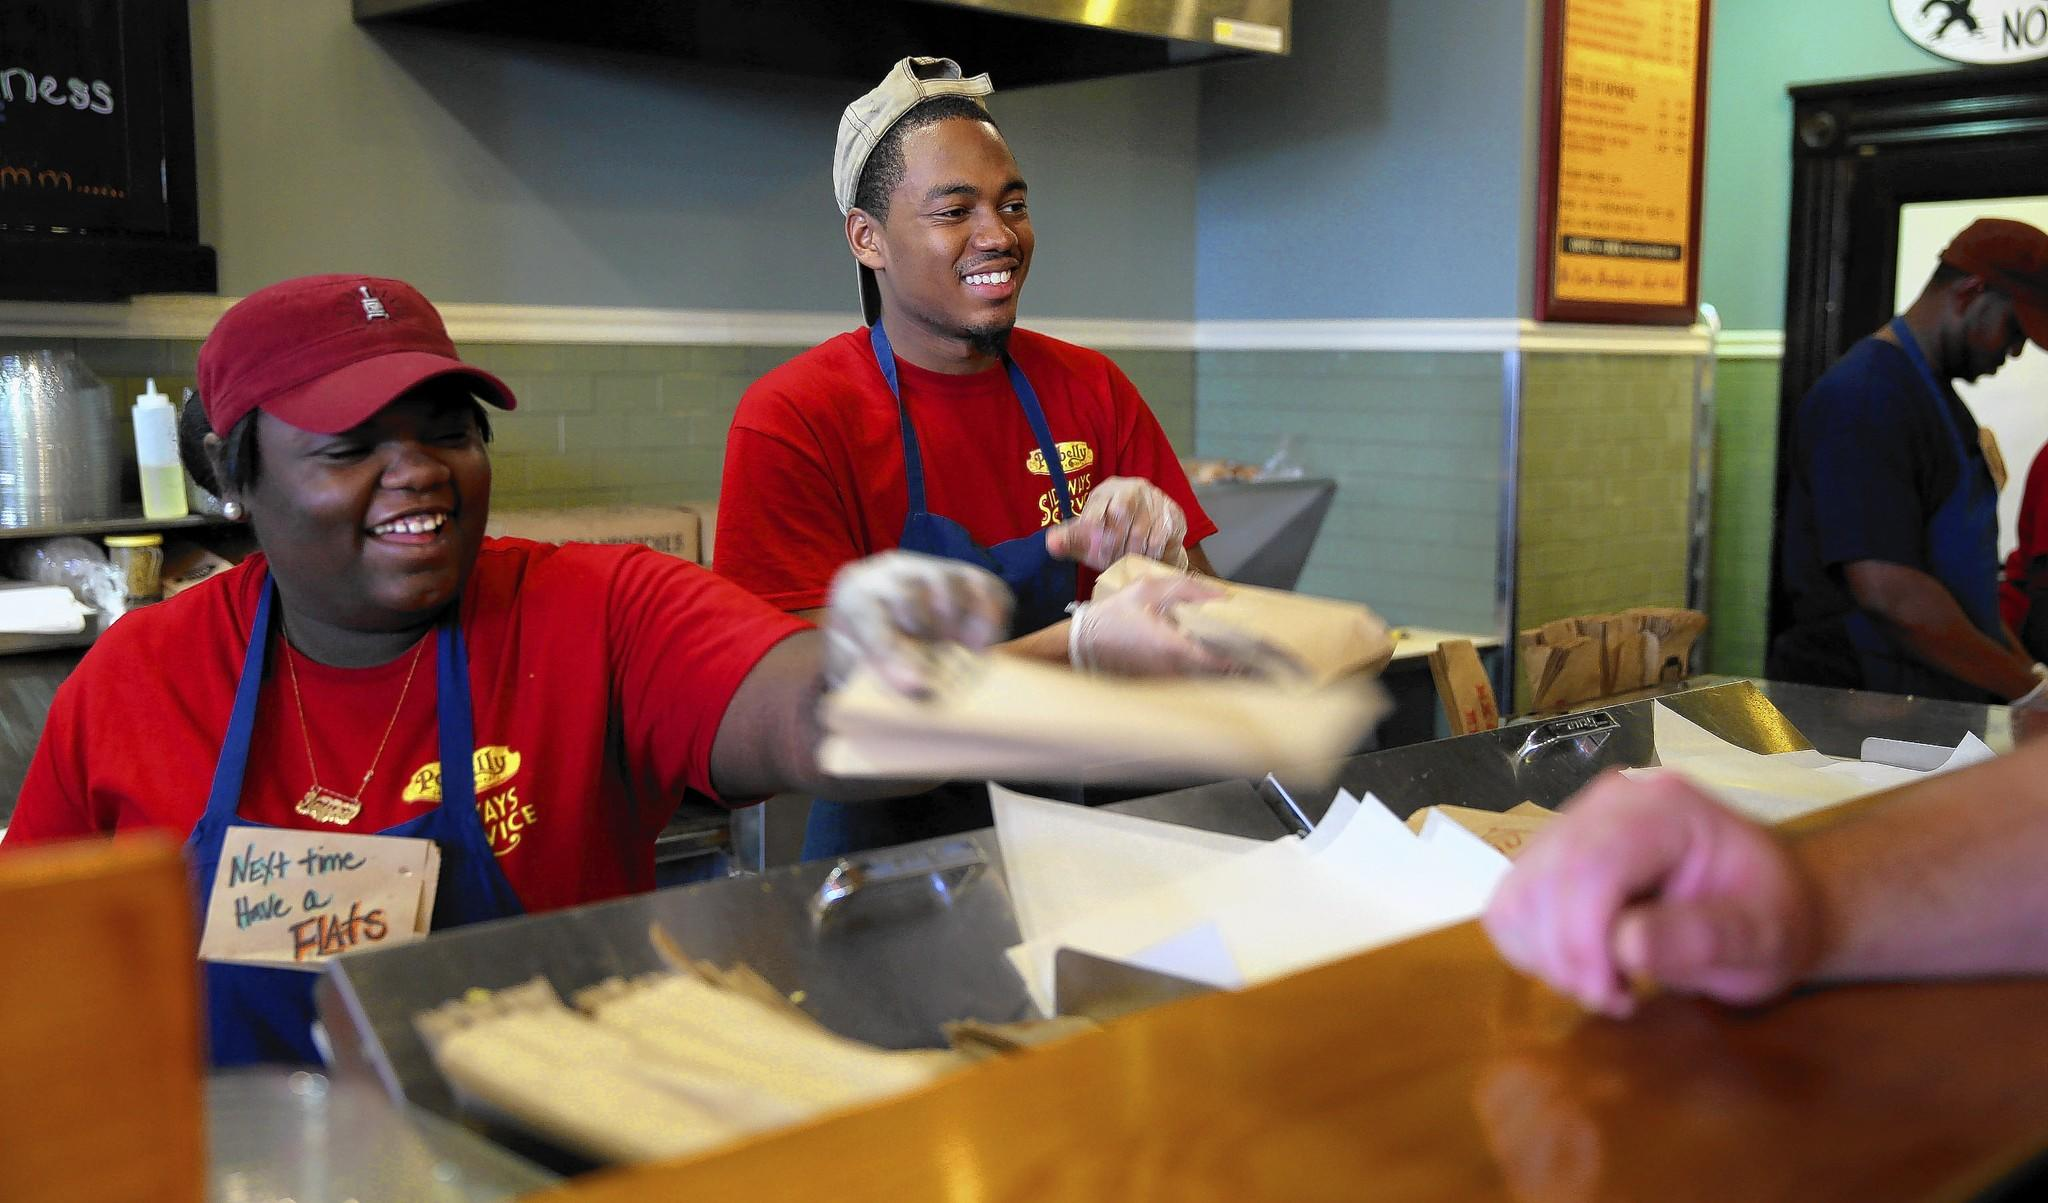 Potbelly may not be doing enough to attract consumers looking for items such as gluten-free offerings, analysts say.